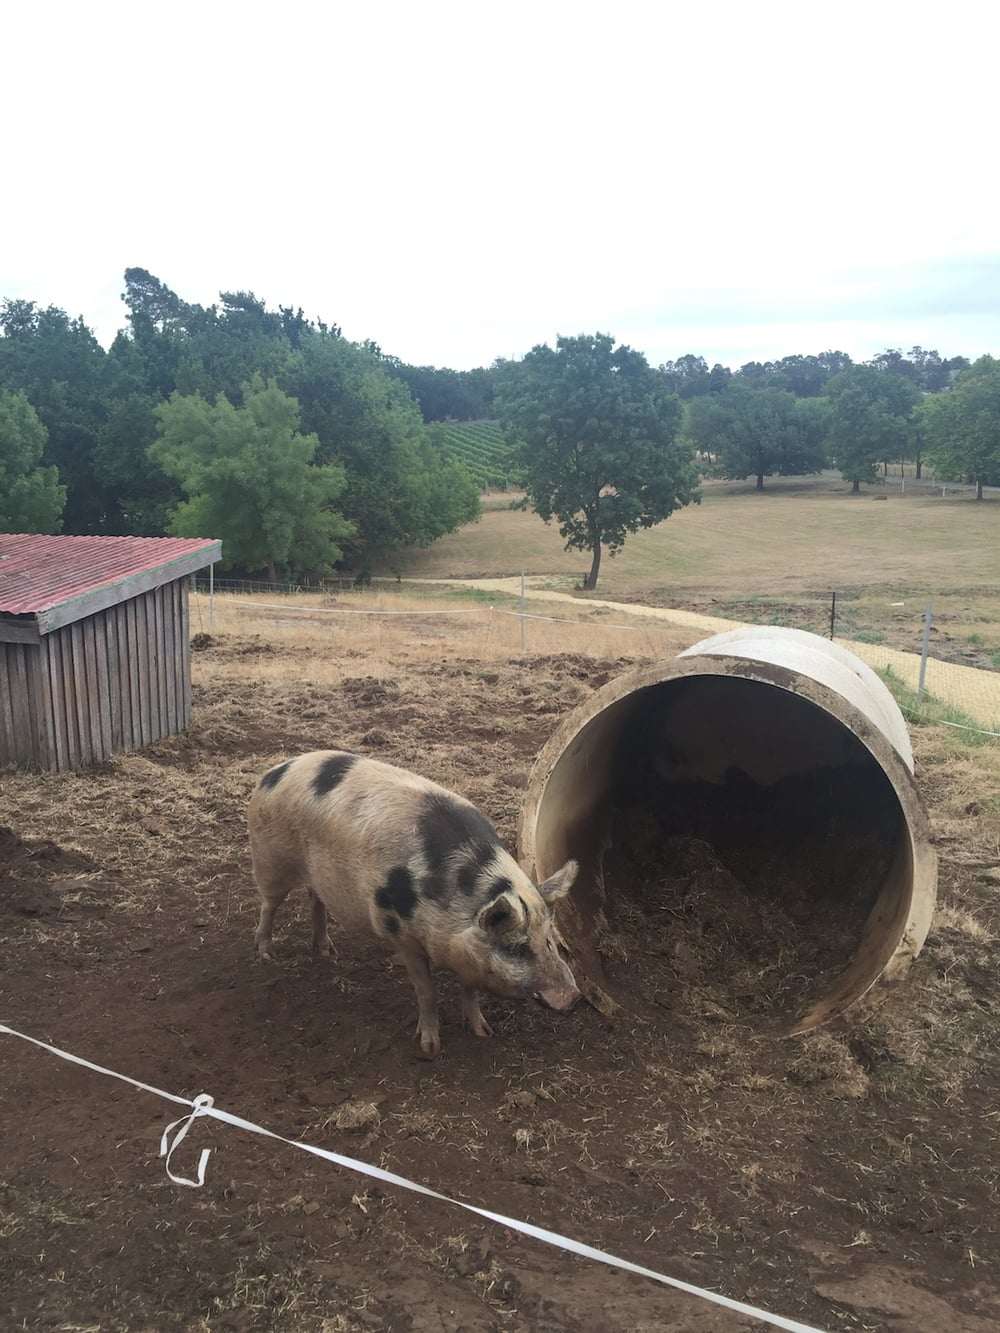 We made friends with this nice piggy (by feeding him!) at the Hold Oak Winery, also in the Tamar Valley.